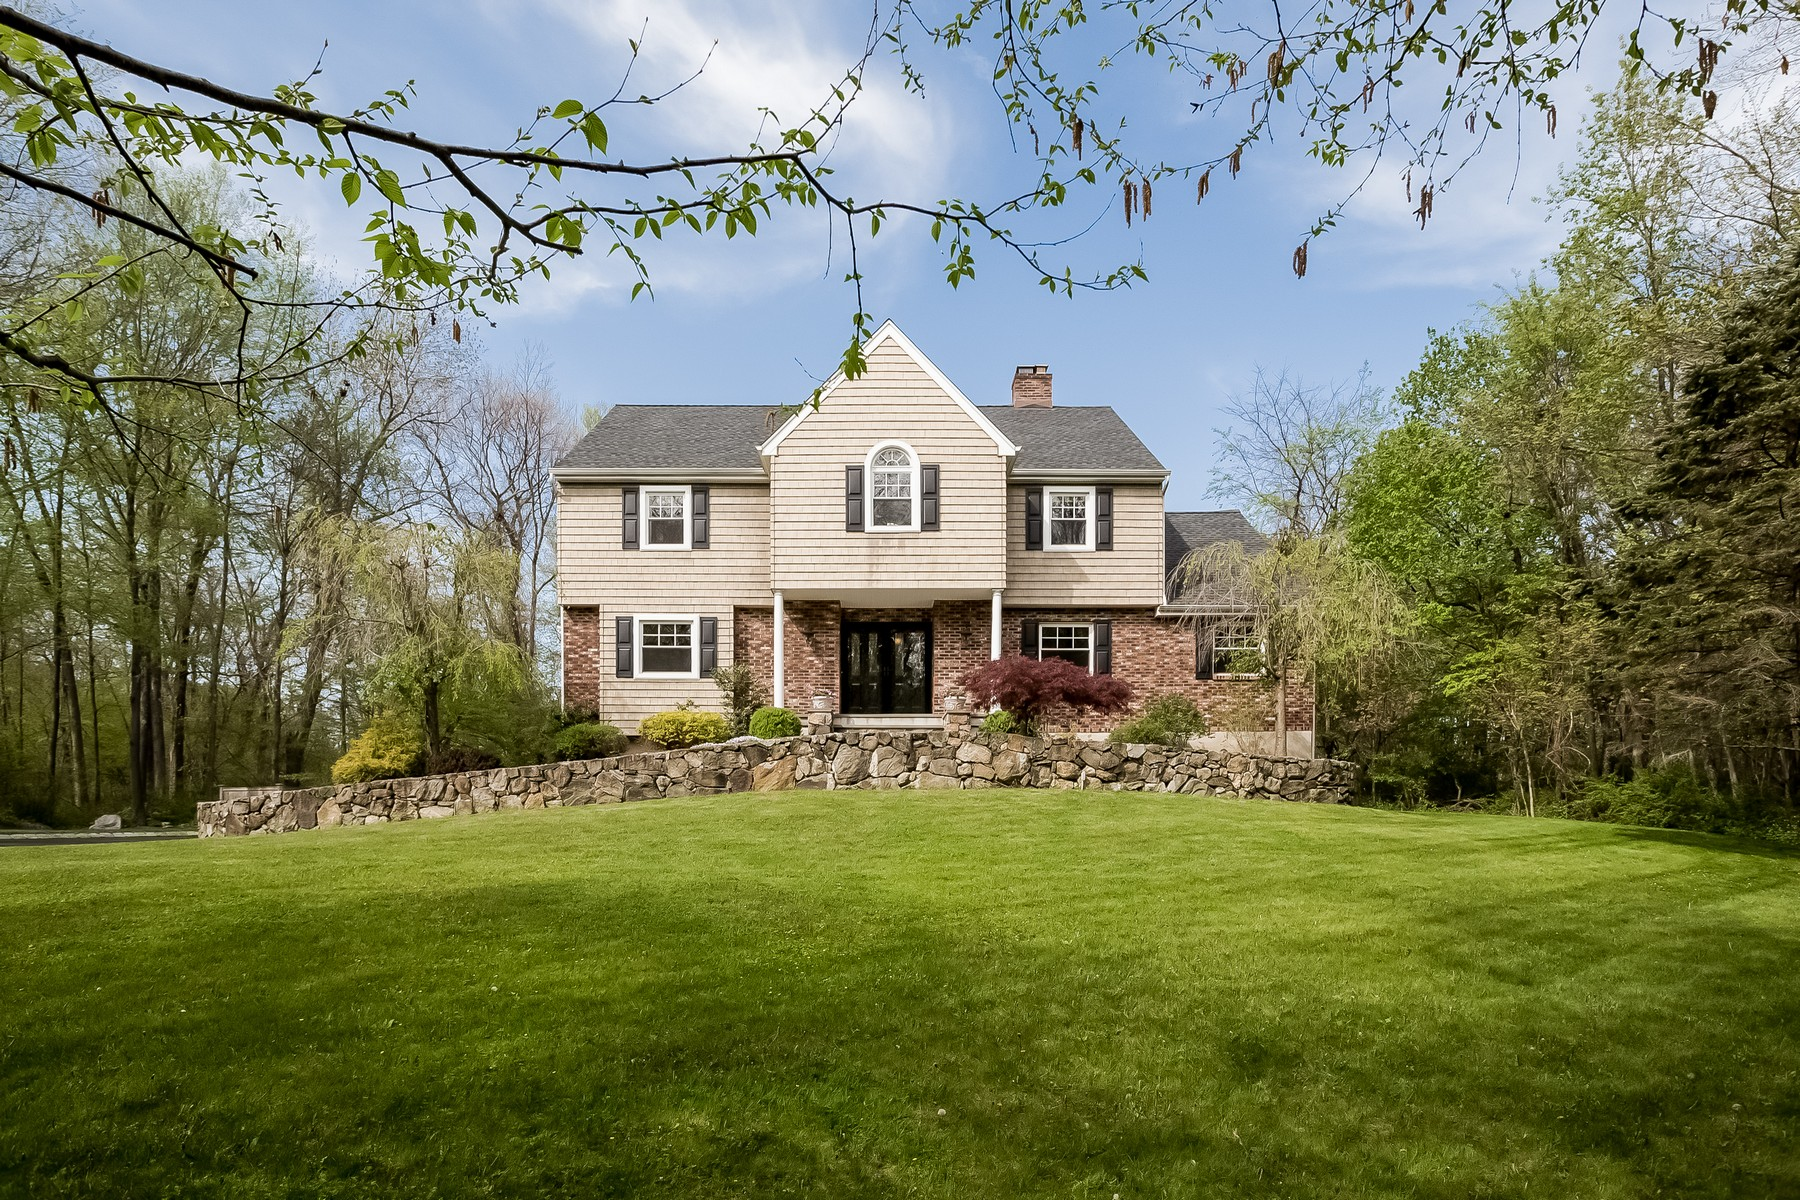 Single Family Home for Sale at Captivating Home in Pleasantview Estates 70 Keeler Drive, Ridgefield, Connecticut, 06877 United States